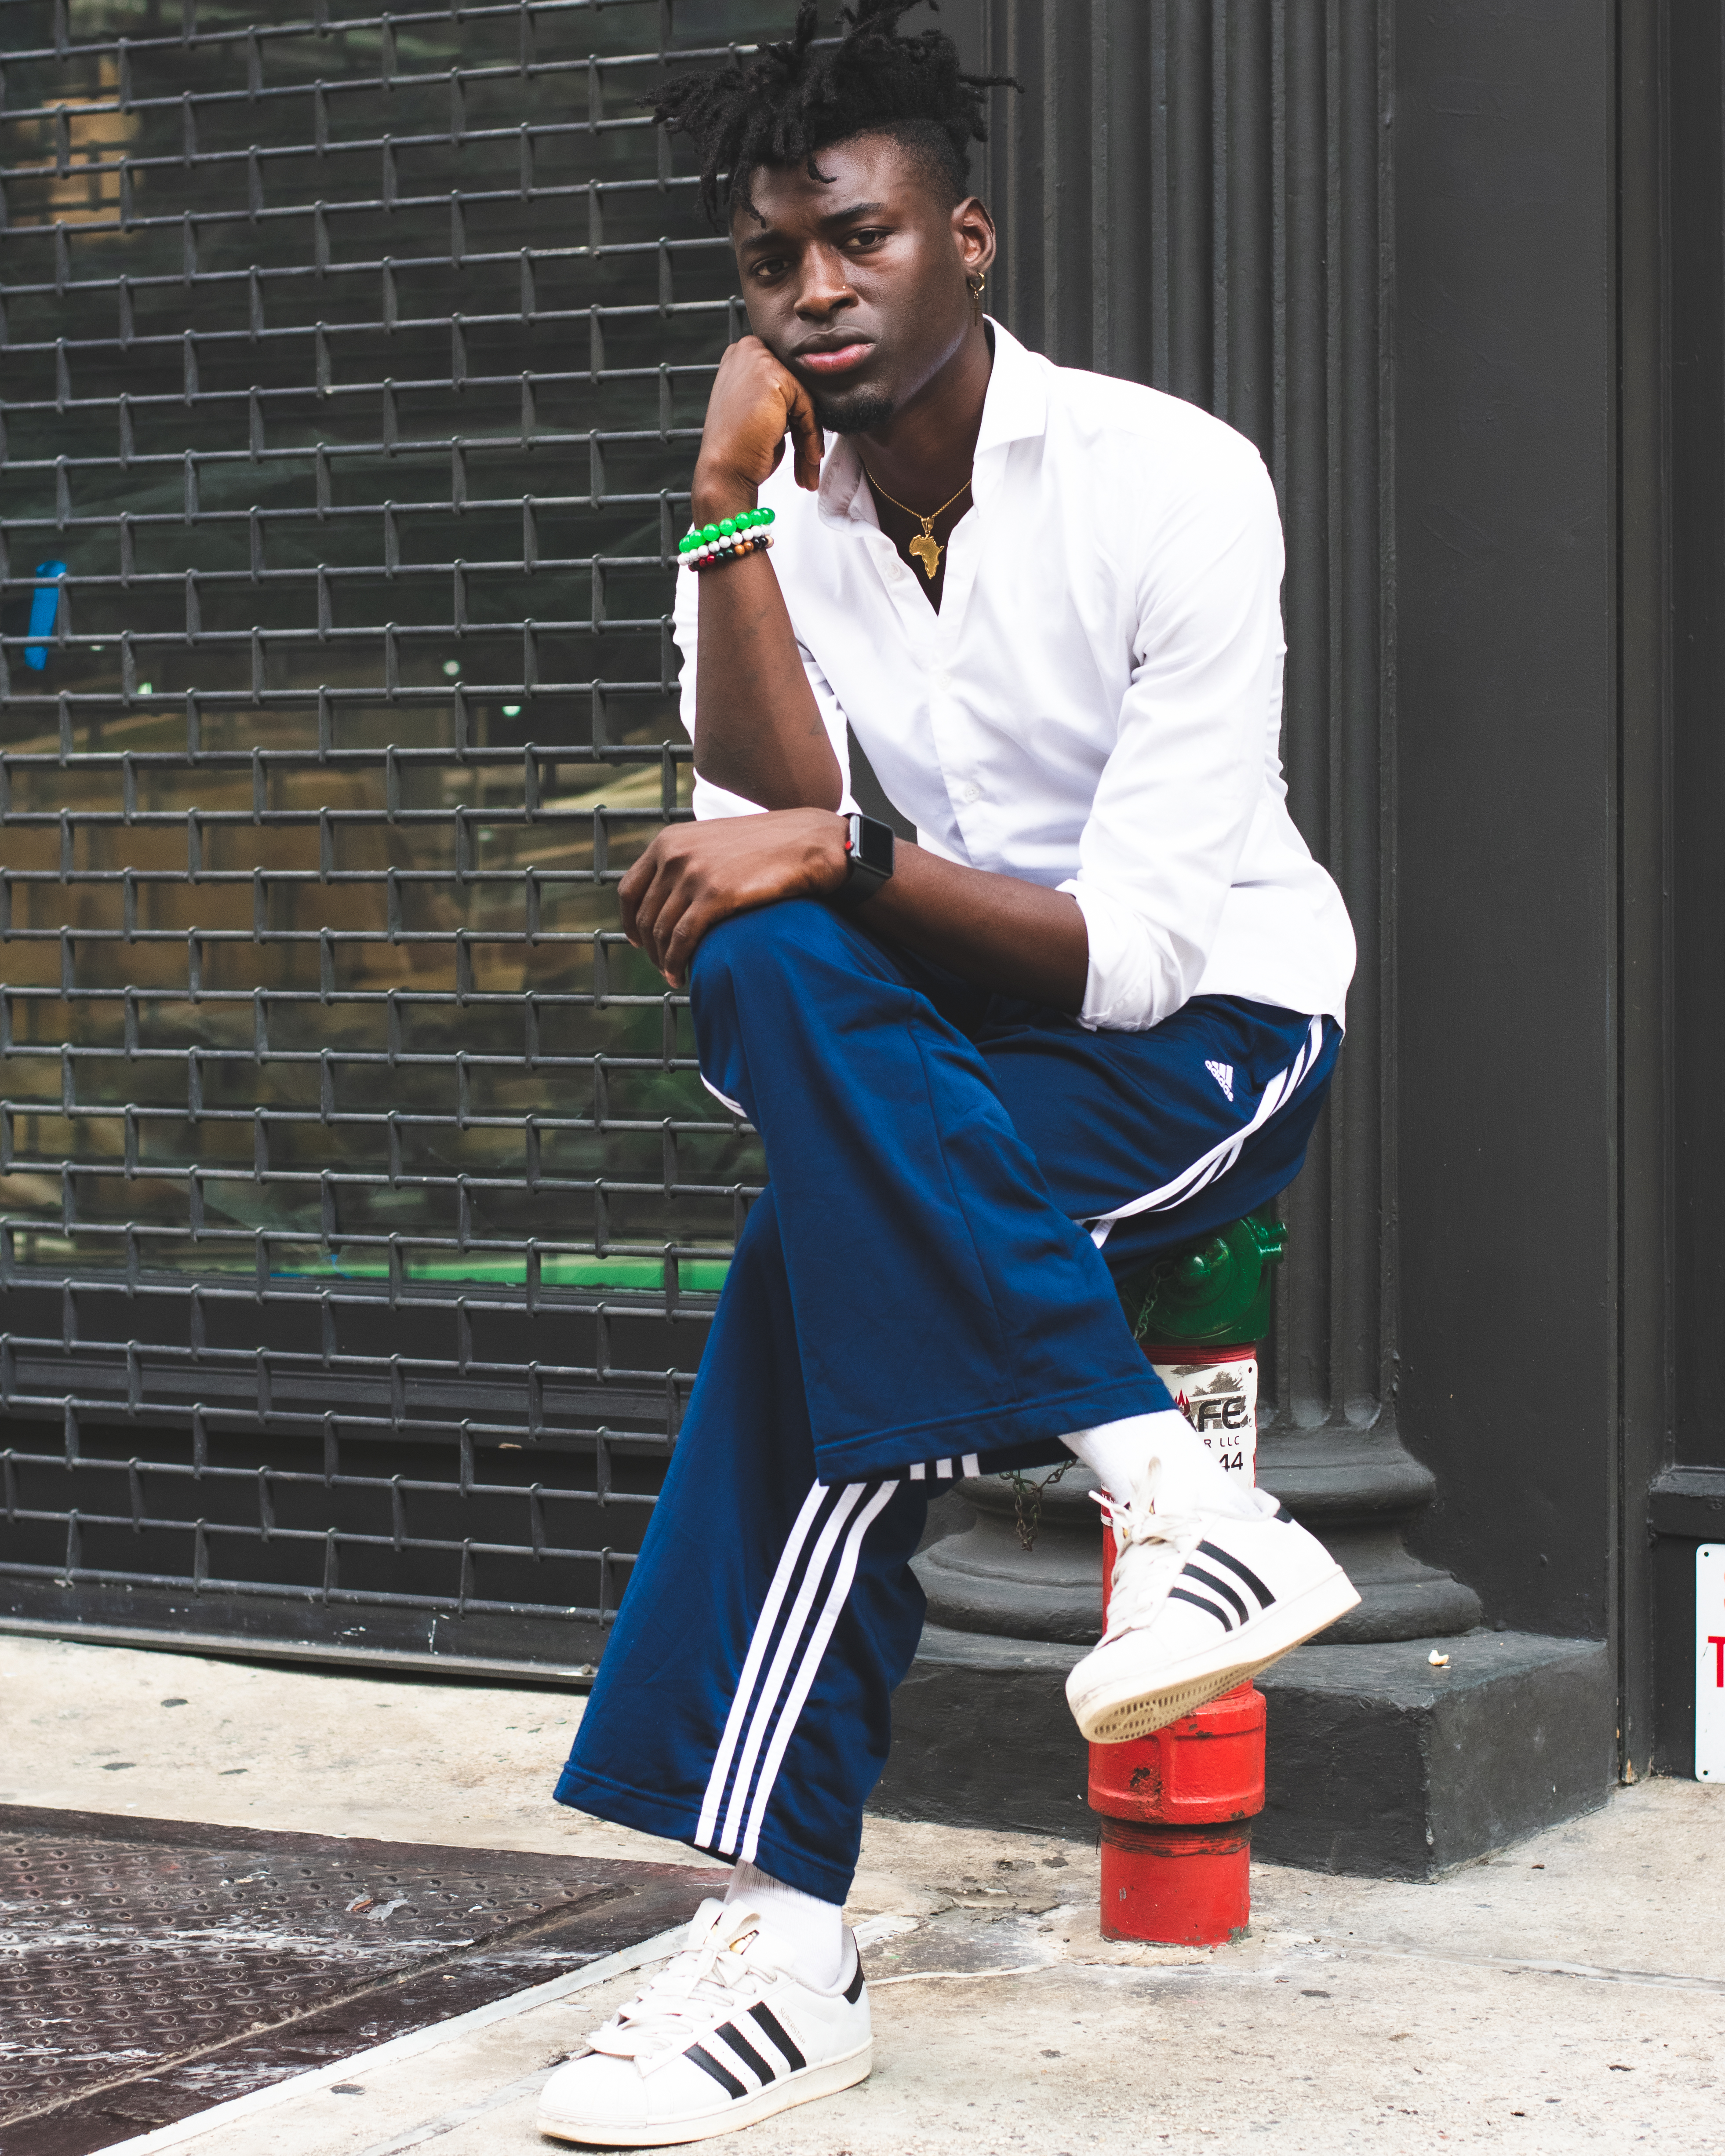 Person Wearing Adidas Superstar · Free Stock Photo